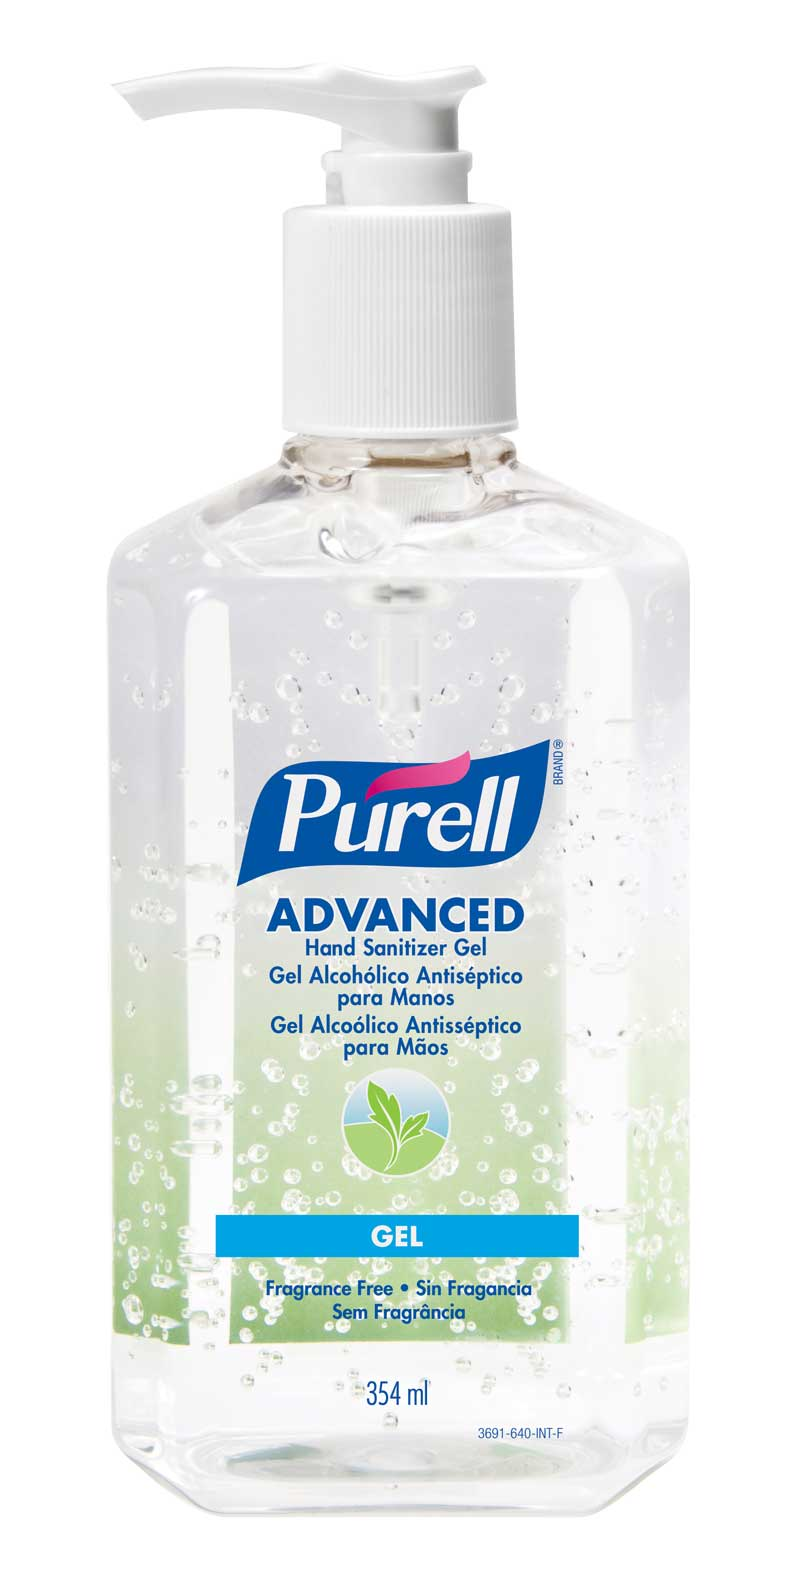 Purell 1903 Foaming Hand Sanitizer Product Details Evolve Pro